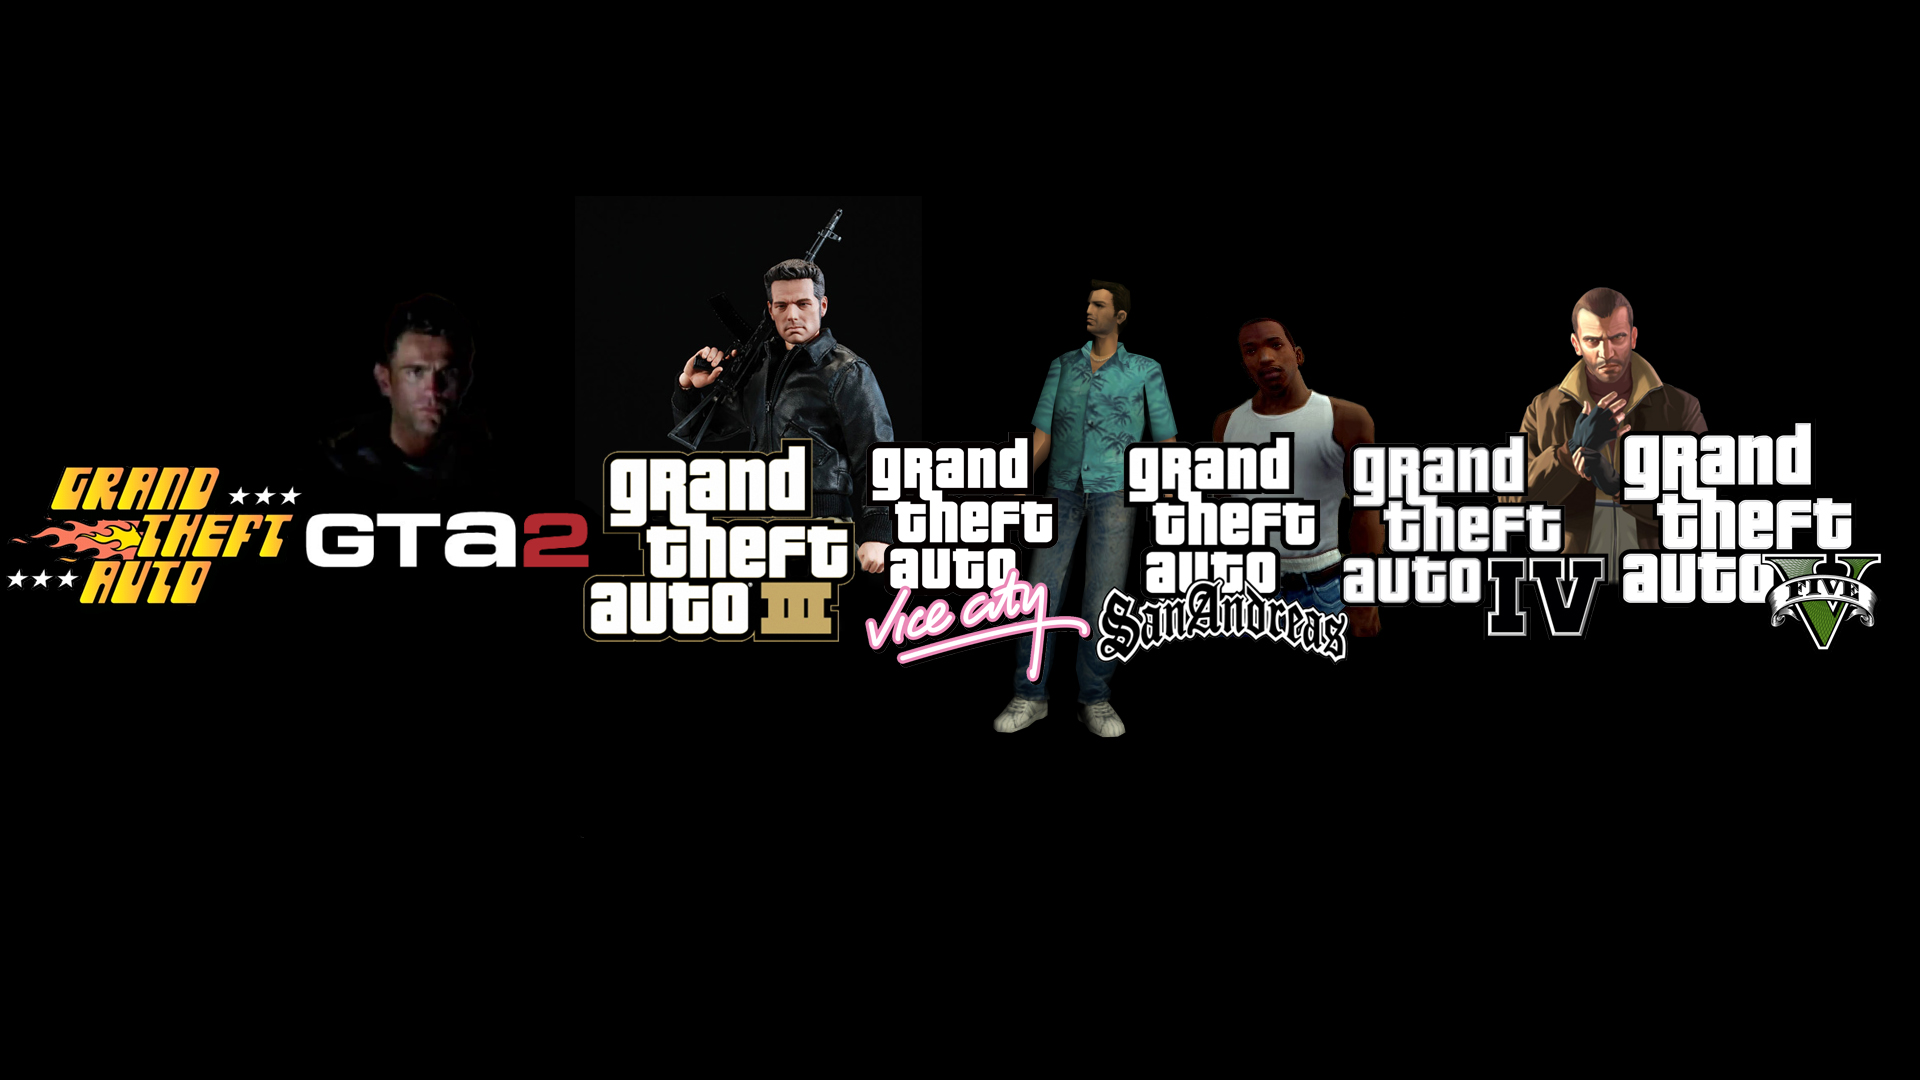 Gta 5 Desktop Wallpaper Hd 1080p Wallpaper